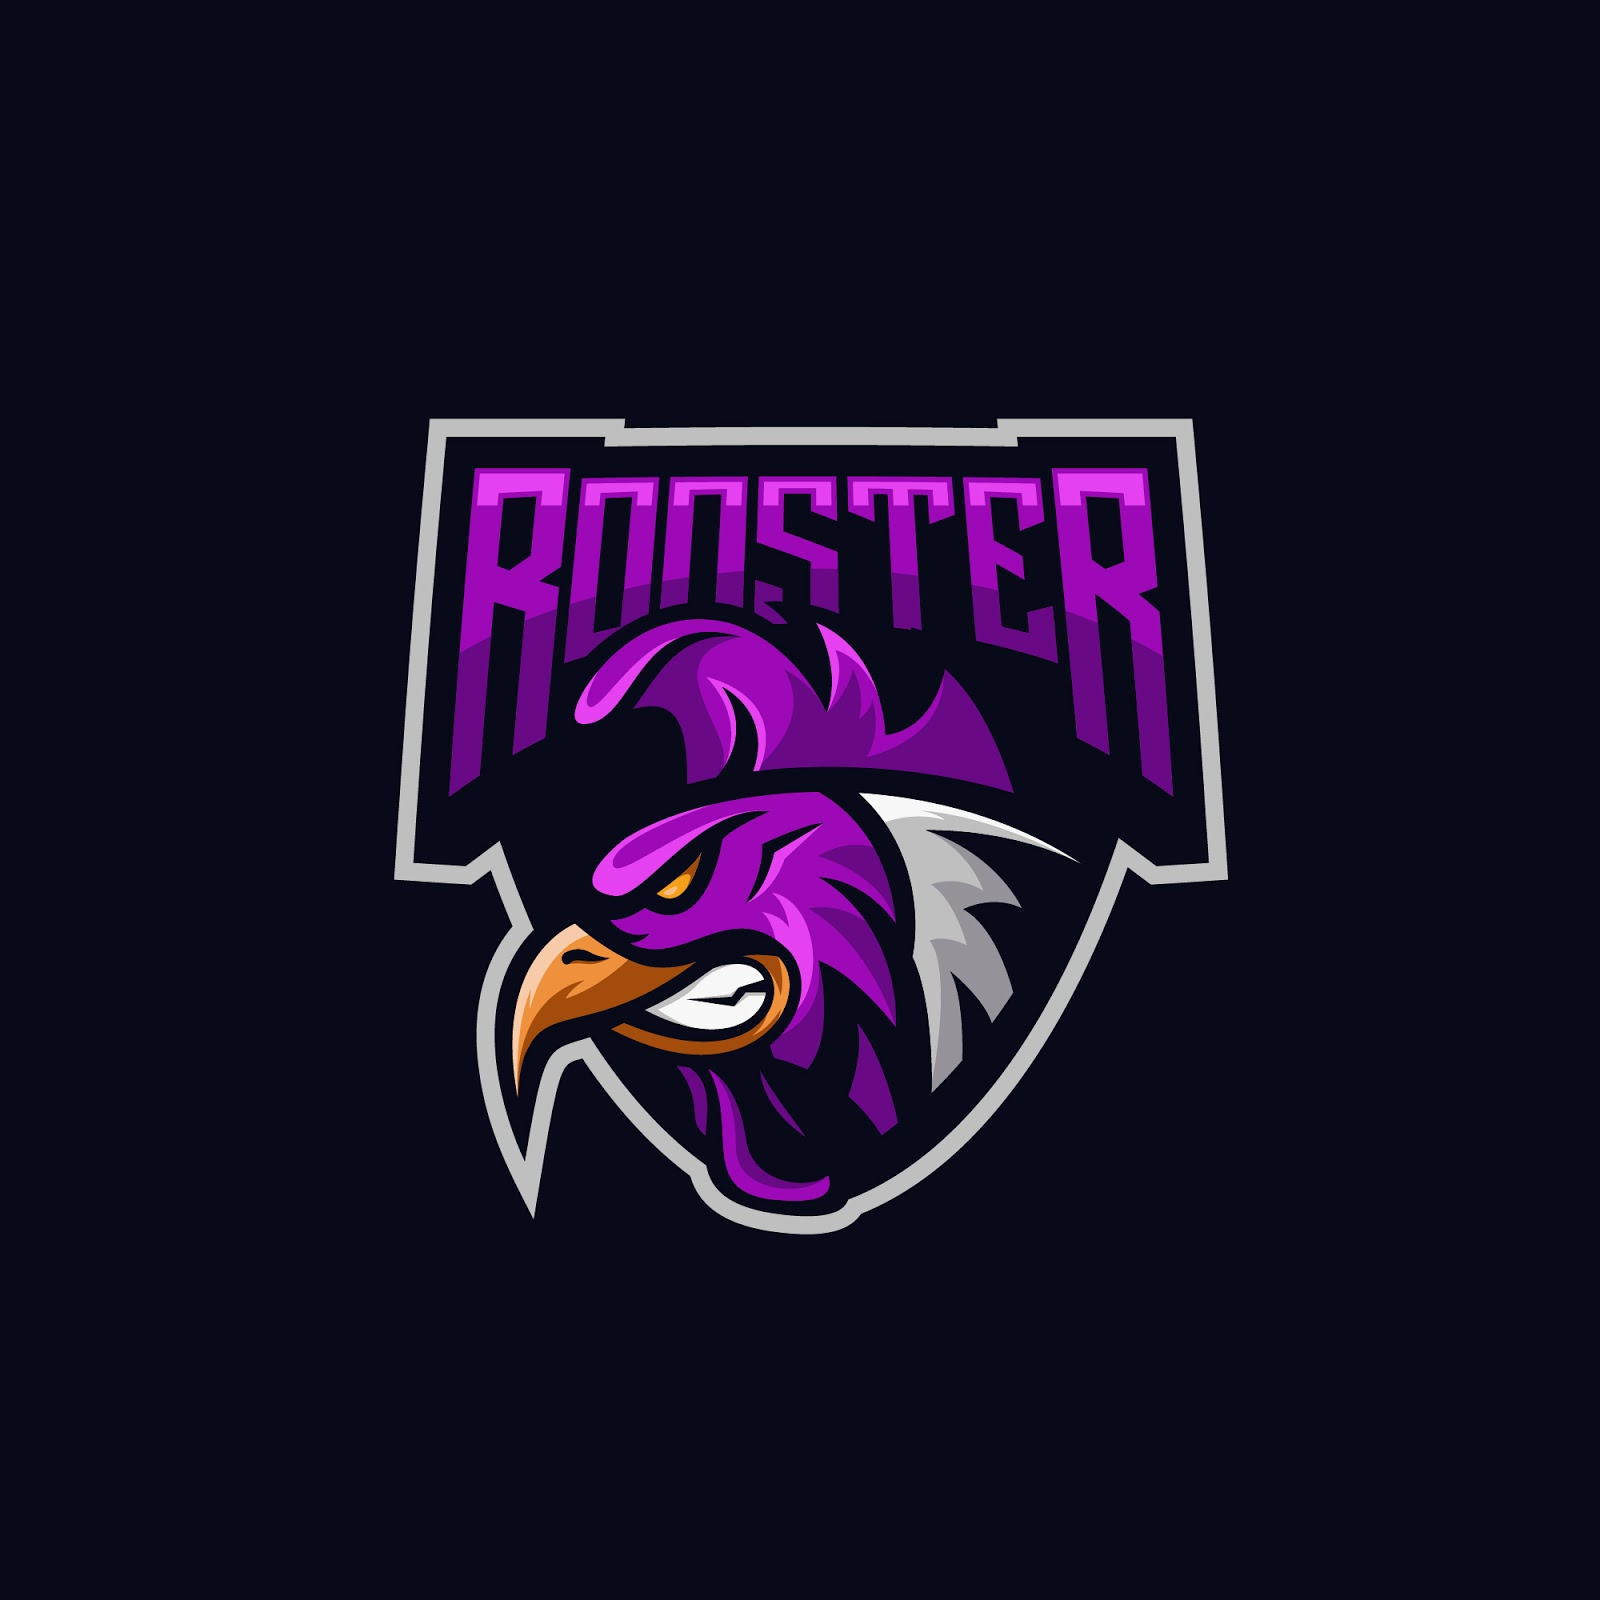 Rooster Awesome Vector Logo Free Download Vector CDR, AI, EPS and PNG Formats